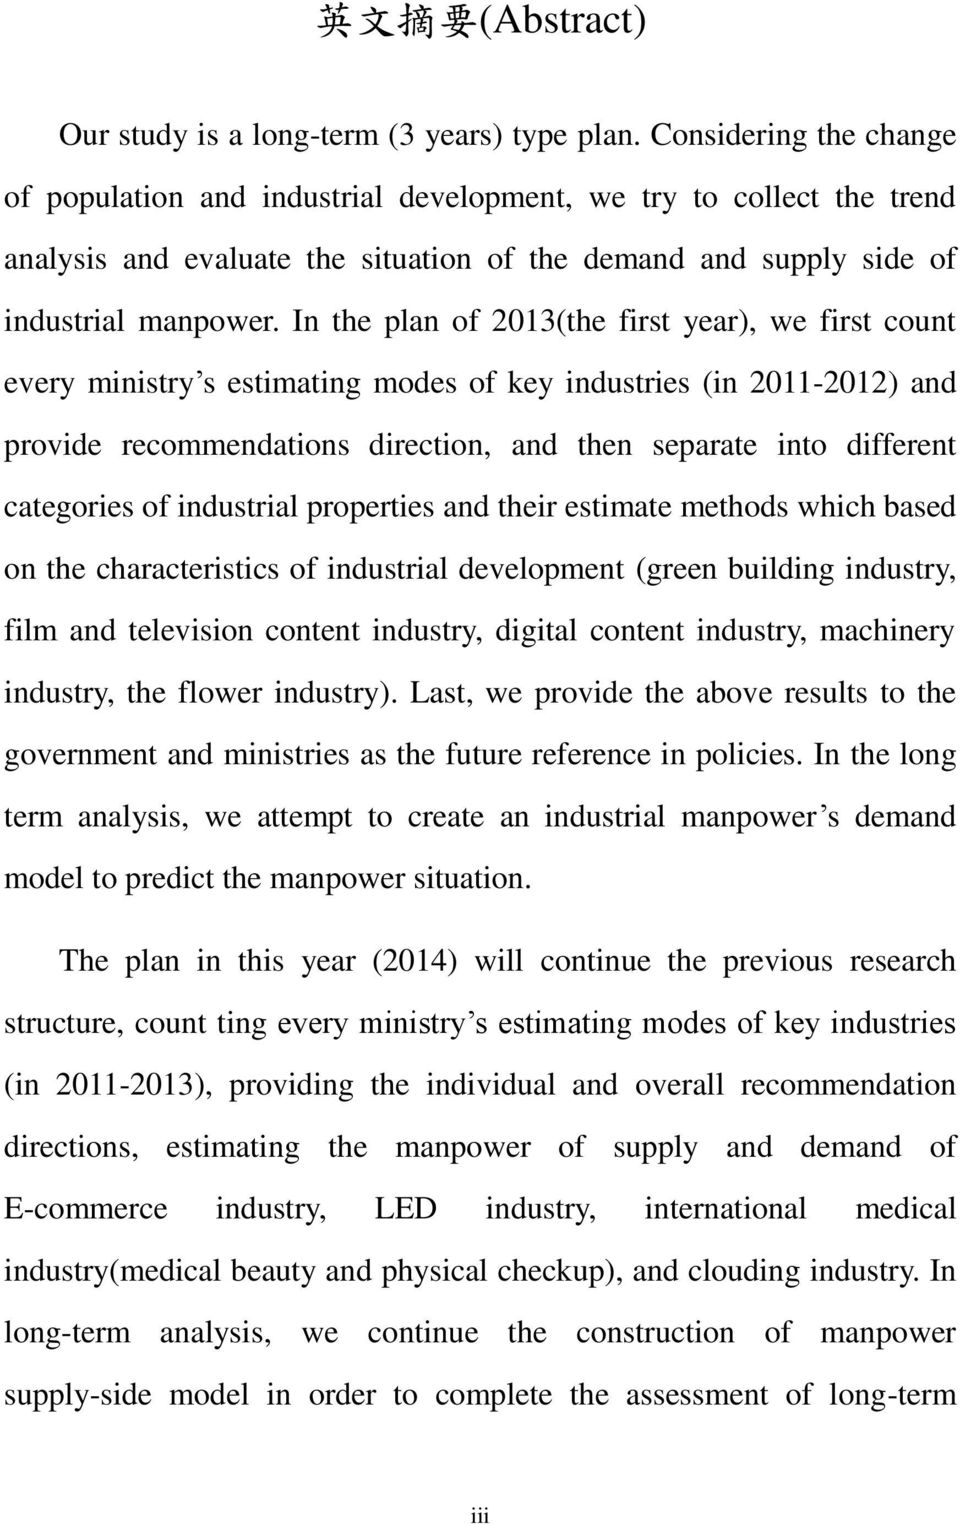 In the plan of 2013(the first year), we first count every ministry s estimating modes of key industries (in 2011-2012) and provide recommendations direction, and then separate into different